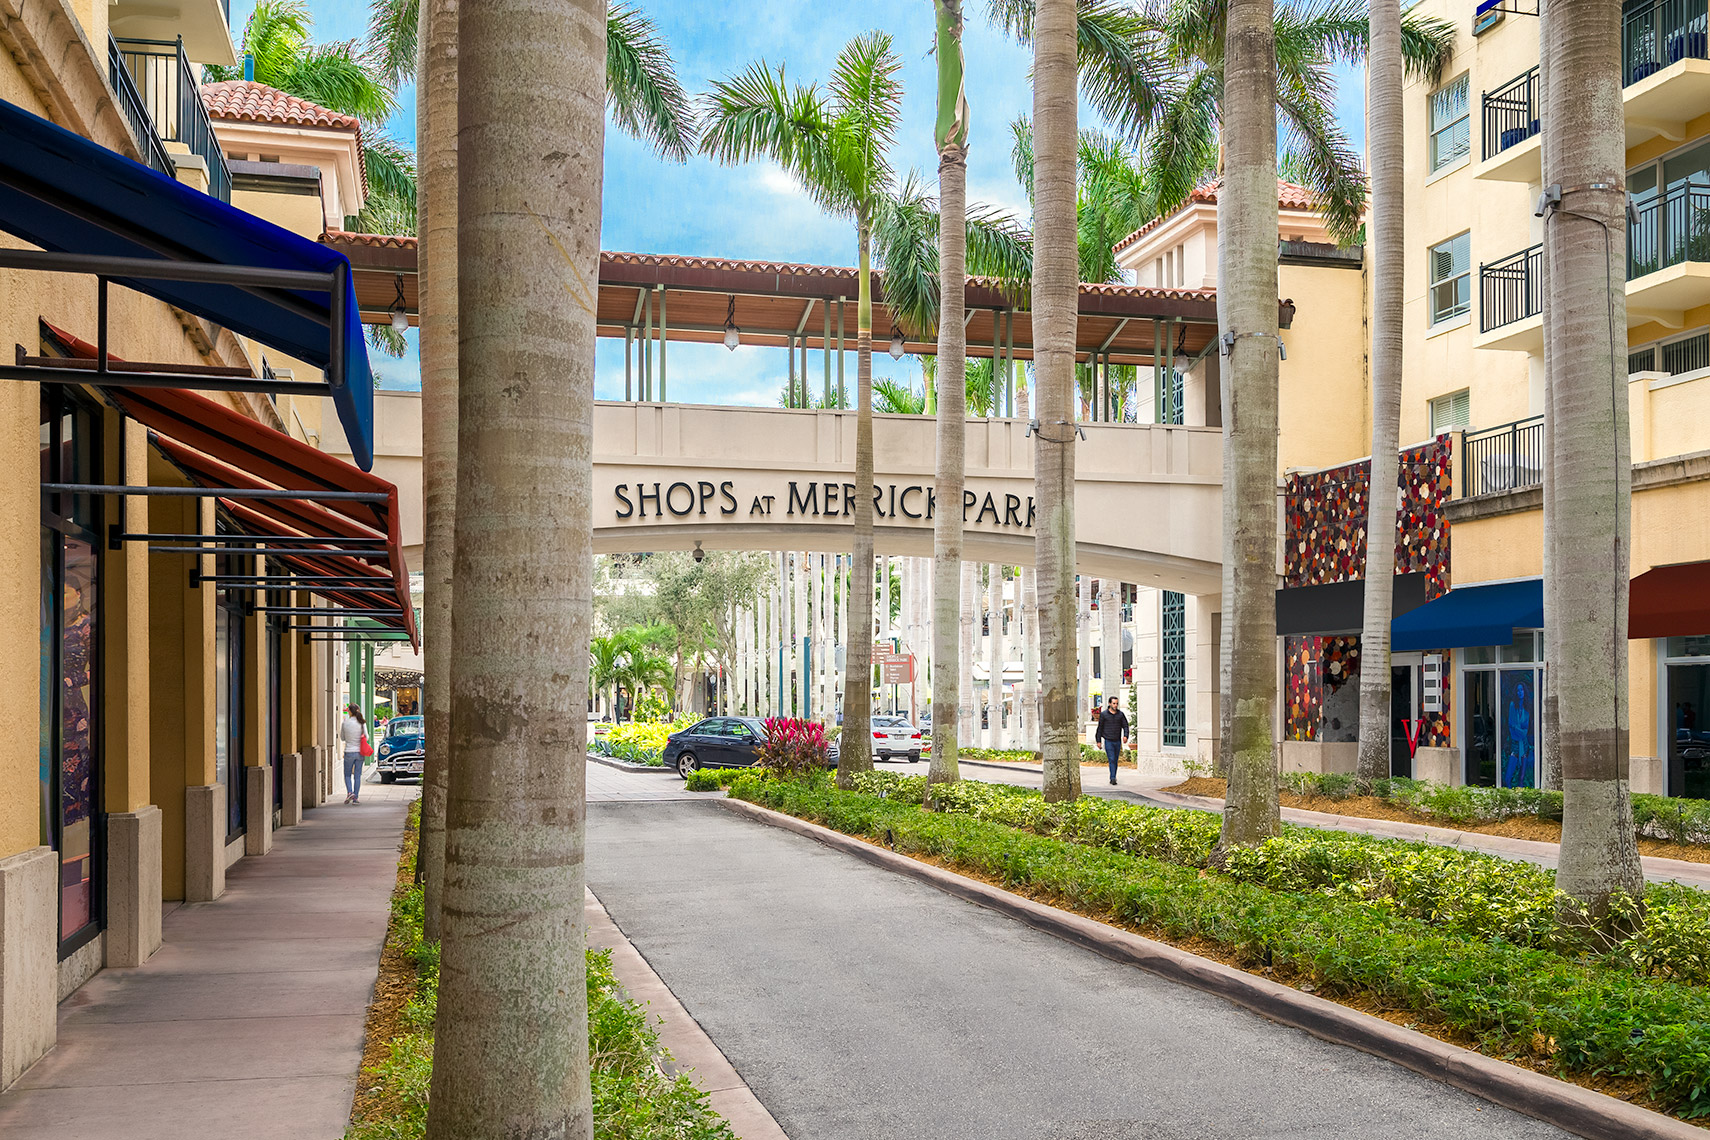 Colonnade of palm trees at entrance to Shops At Merrick Park